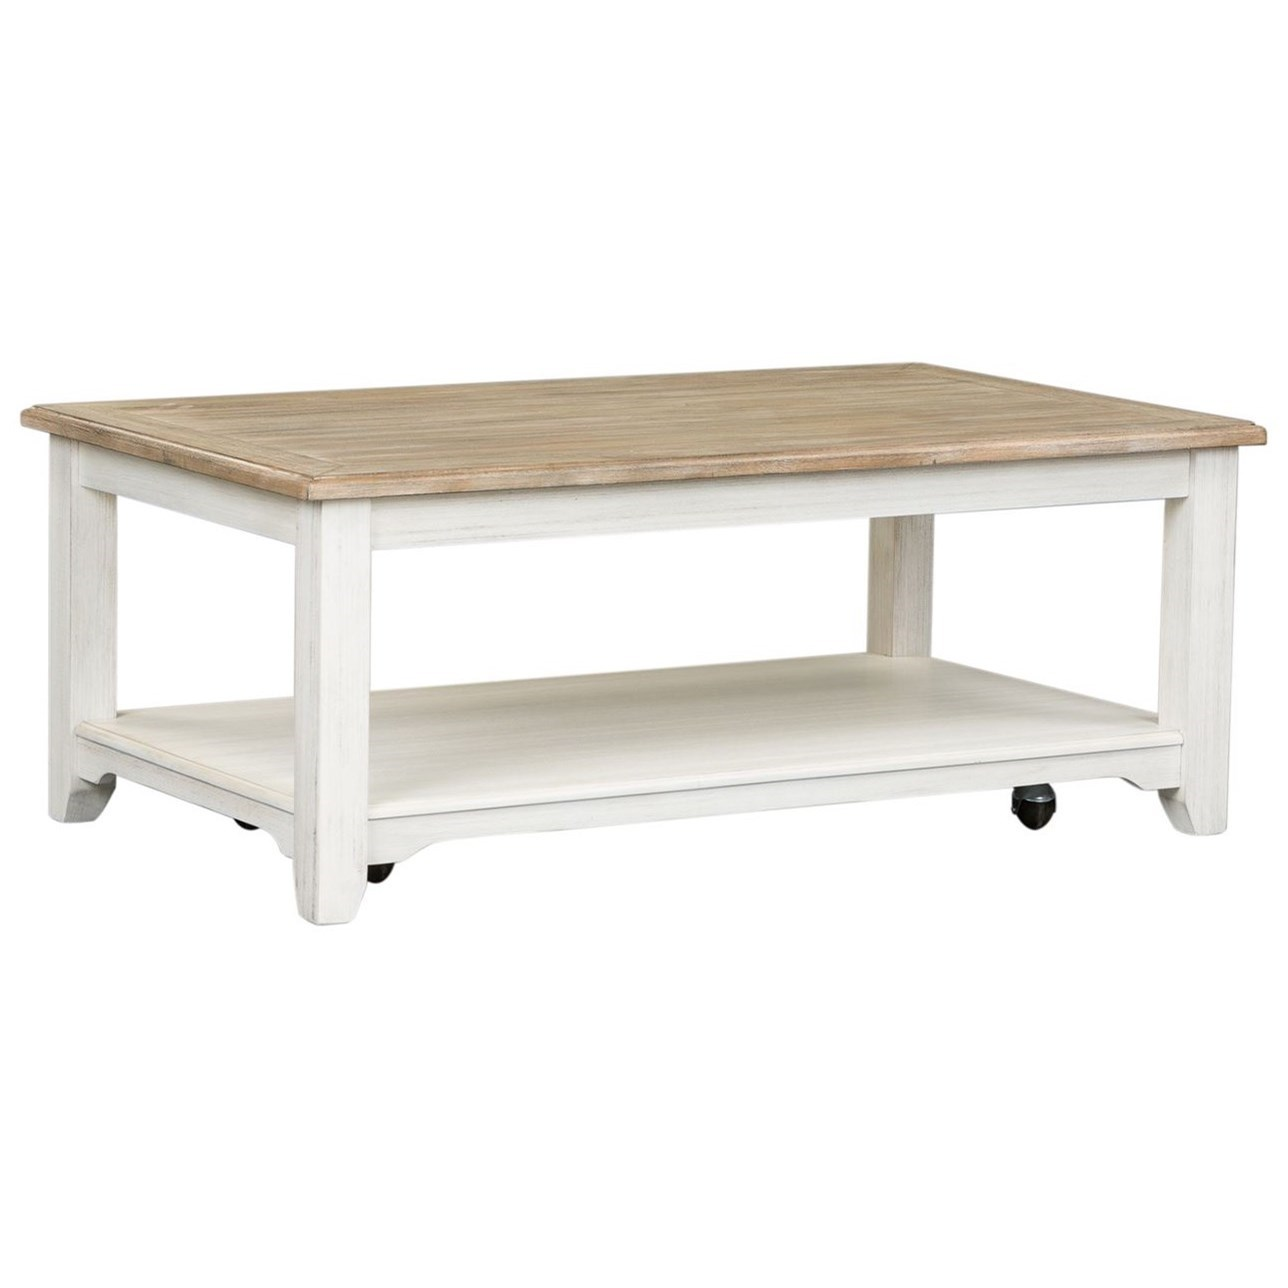 Summerville Rectangular Cocktail Table by Libby at Walker's Furniture